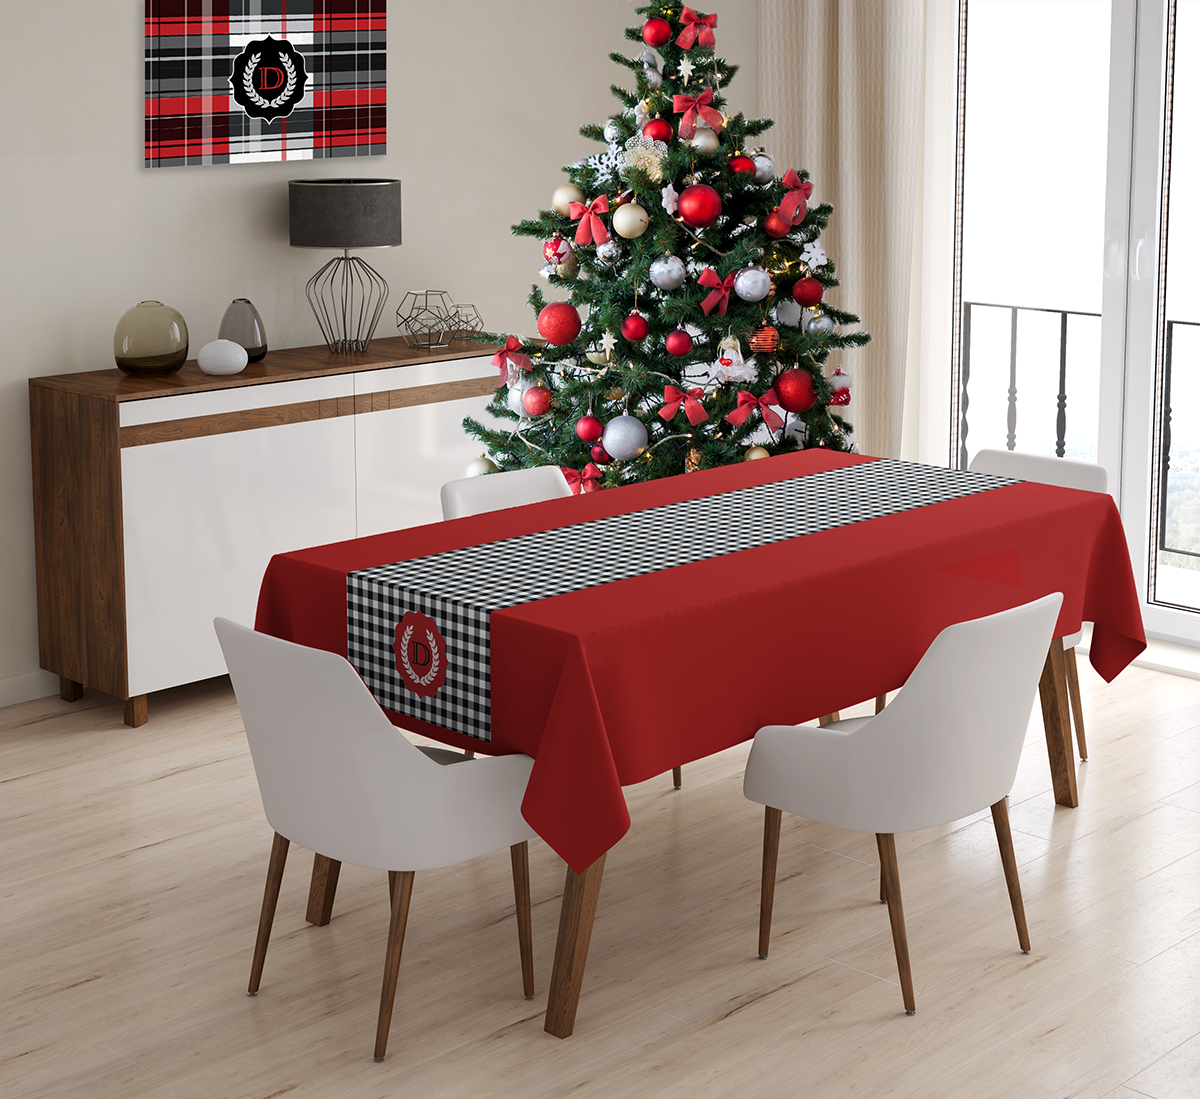 tablecloth-and-runner-buffalo-plaid-tree.jpg